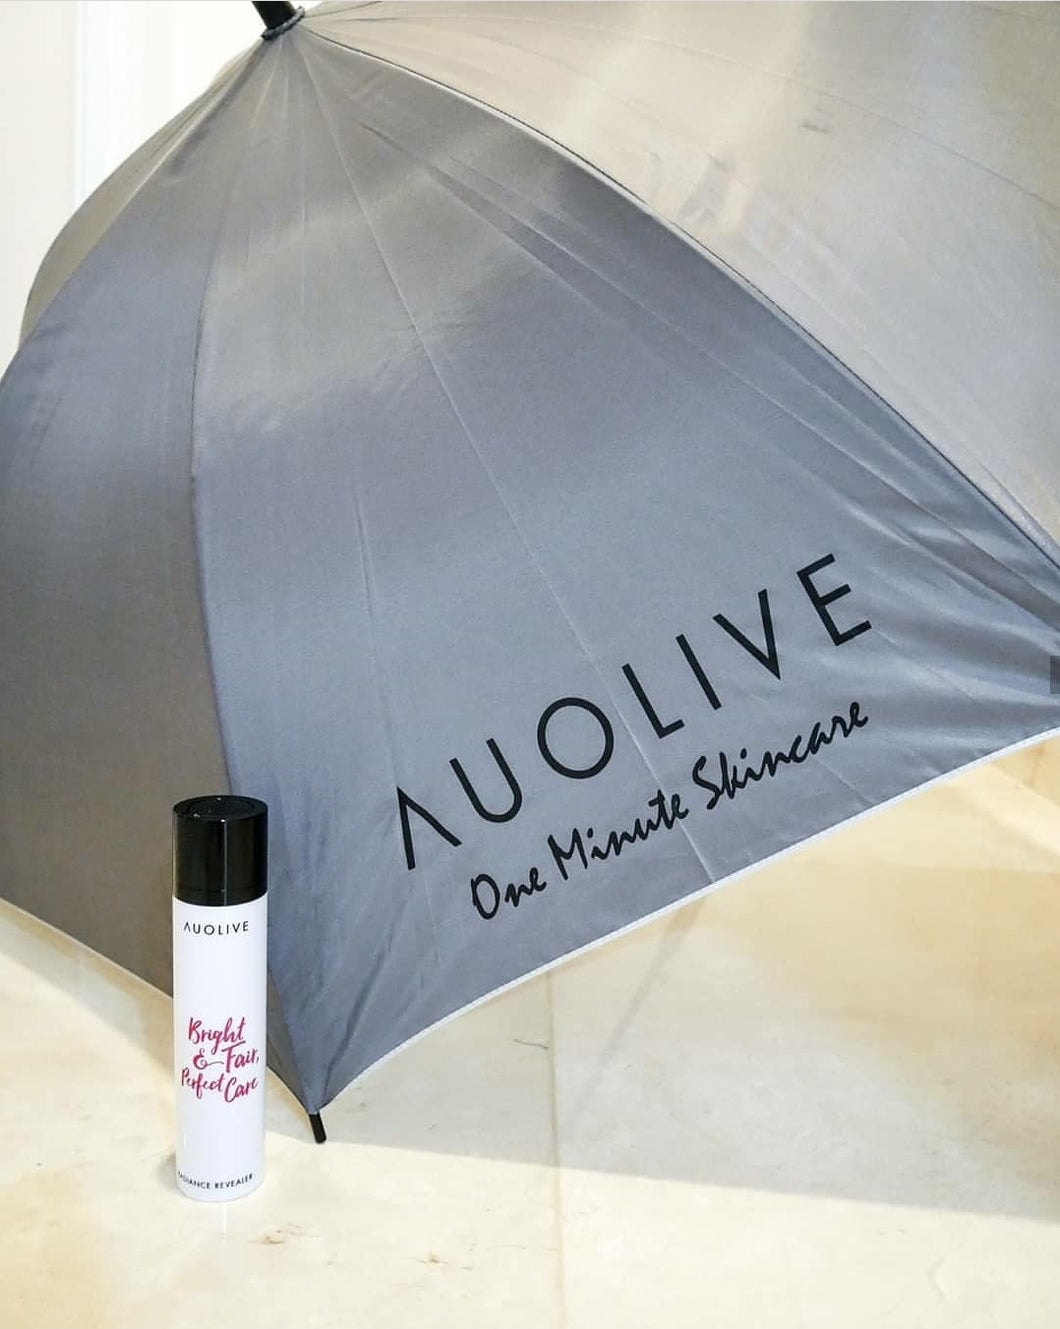 Limited Edition Auolive Large Umbrella